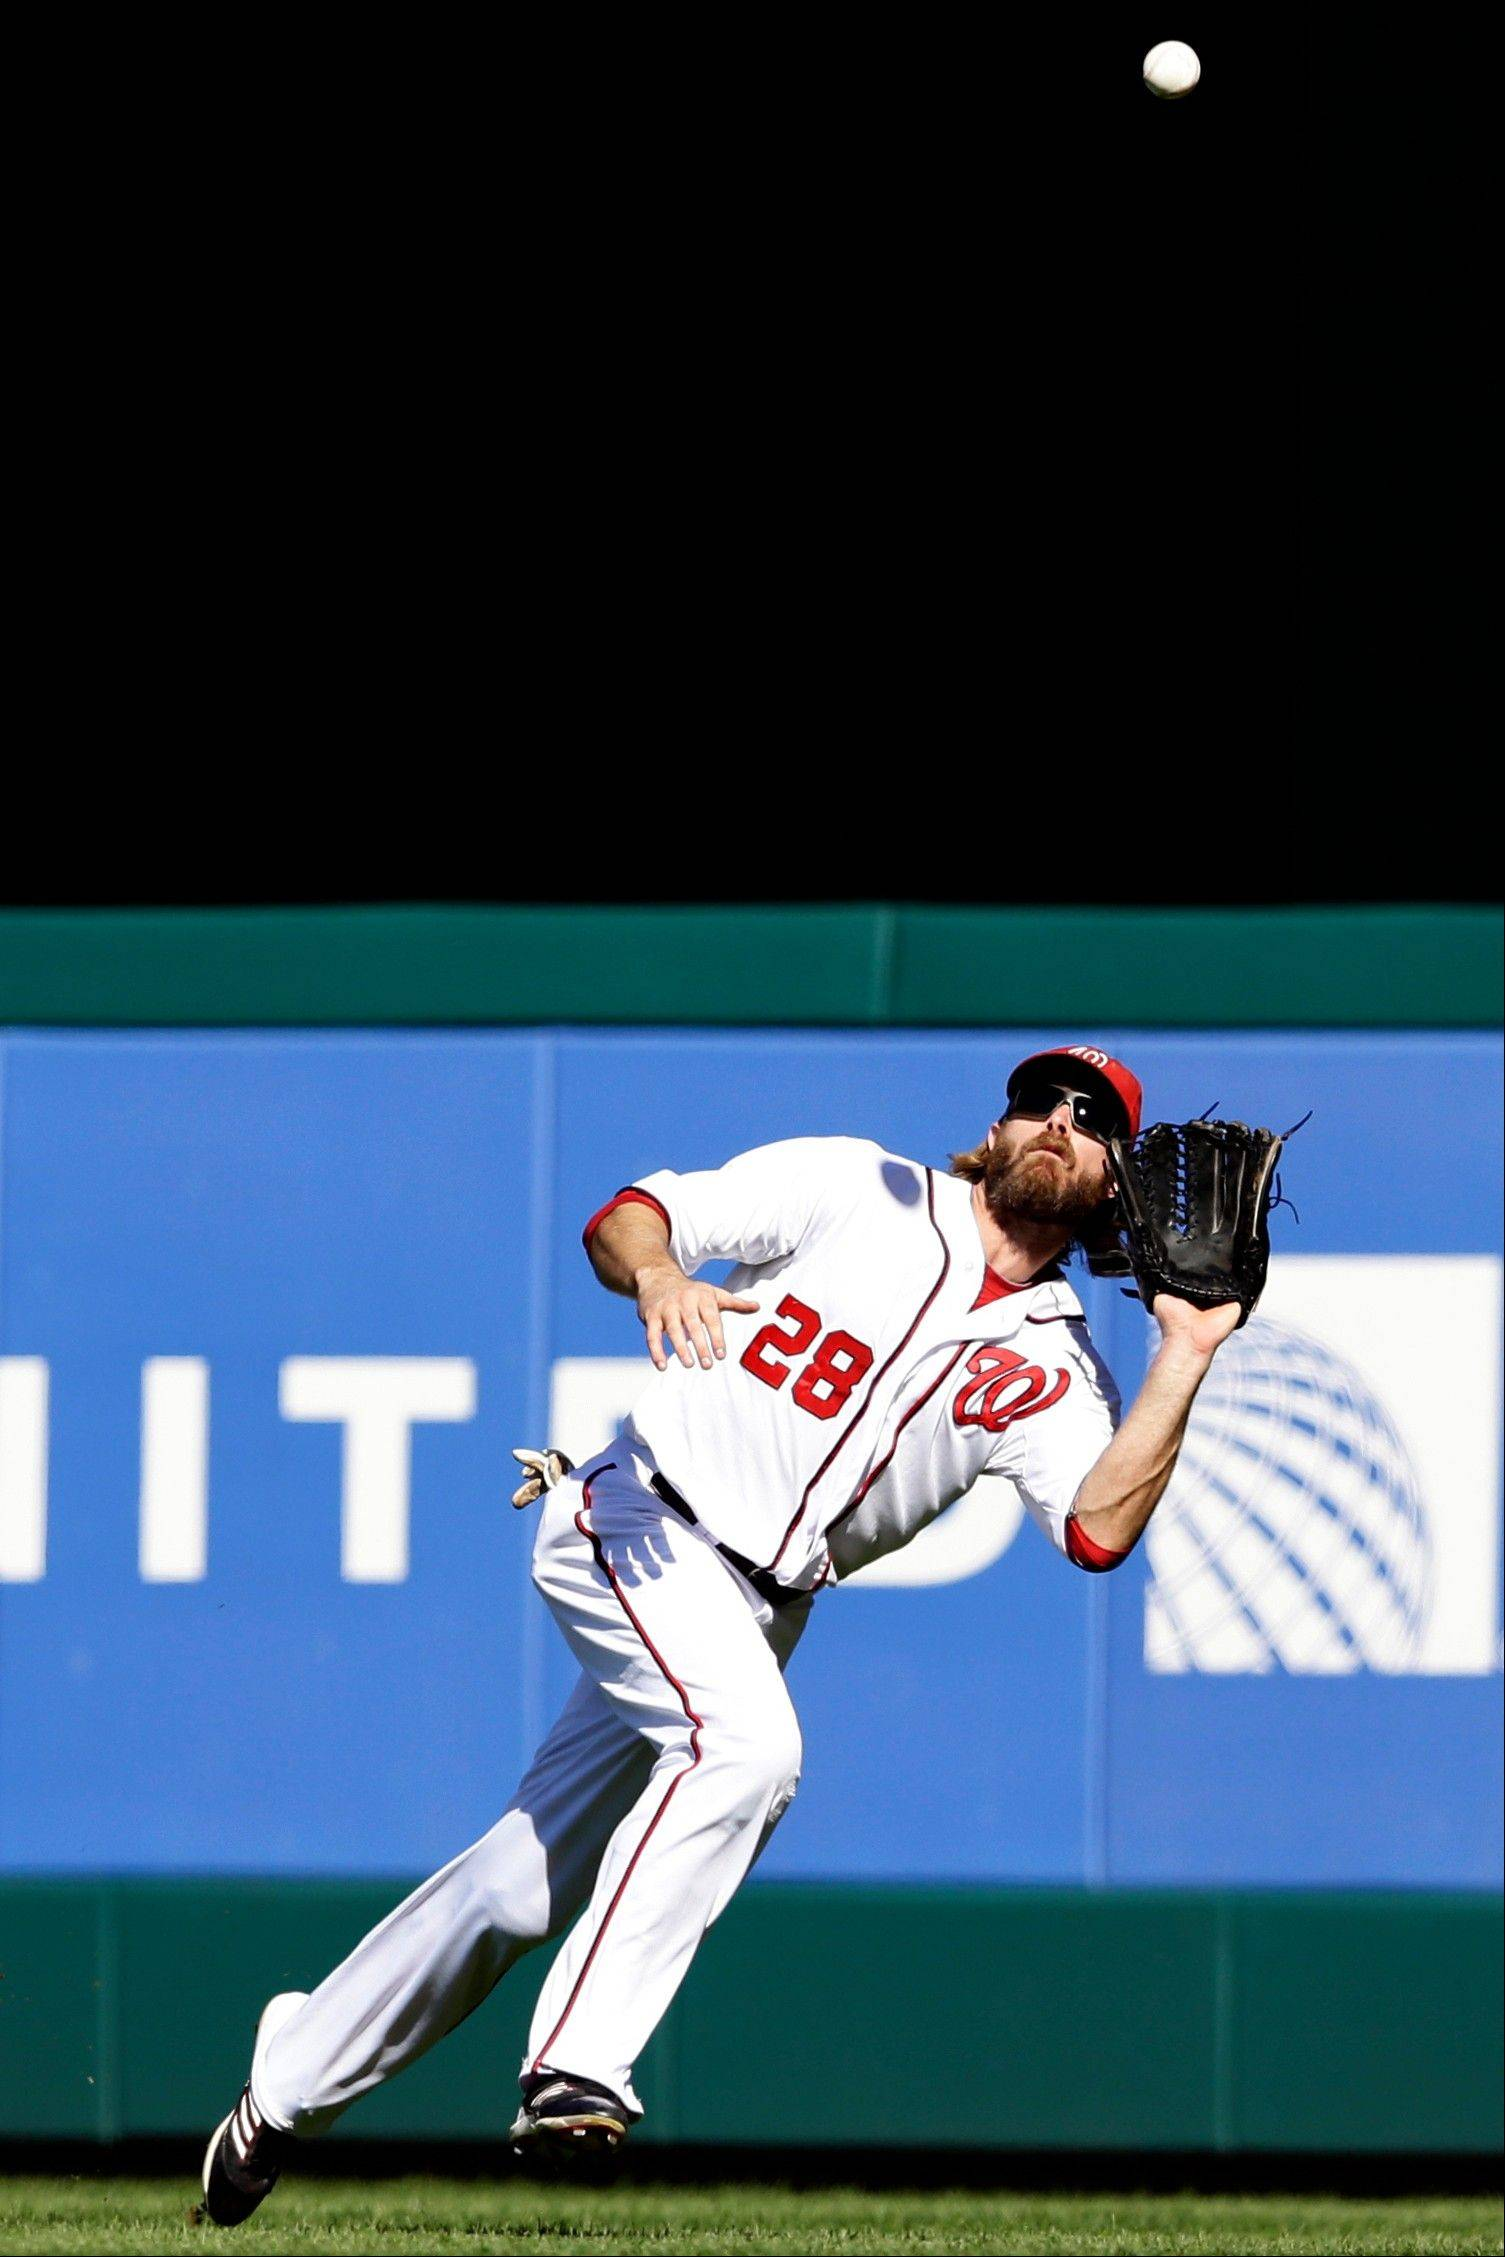 Washington Nationals right fielder Jayson Werth prepares to make the catch on a ball hit by Milwaukee Brewers Corey Hart during the sixth inning of a baseball game at Nationals Park, Monday in Washington. The Nationals won 12-2.